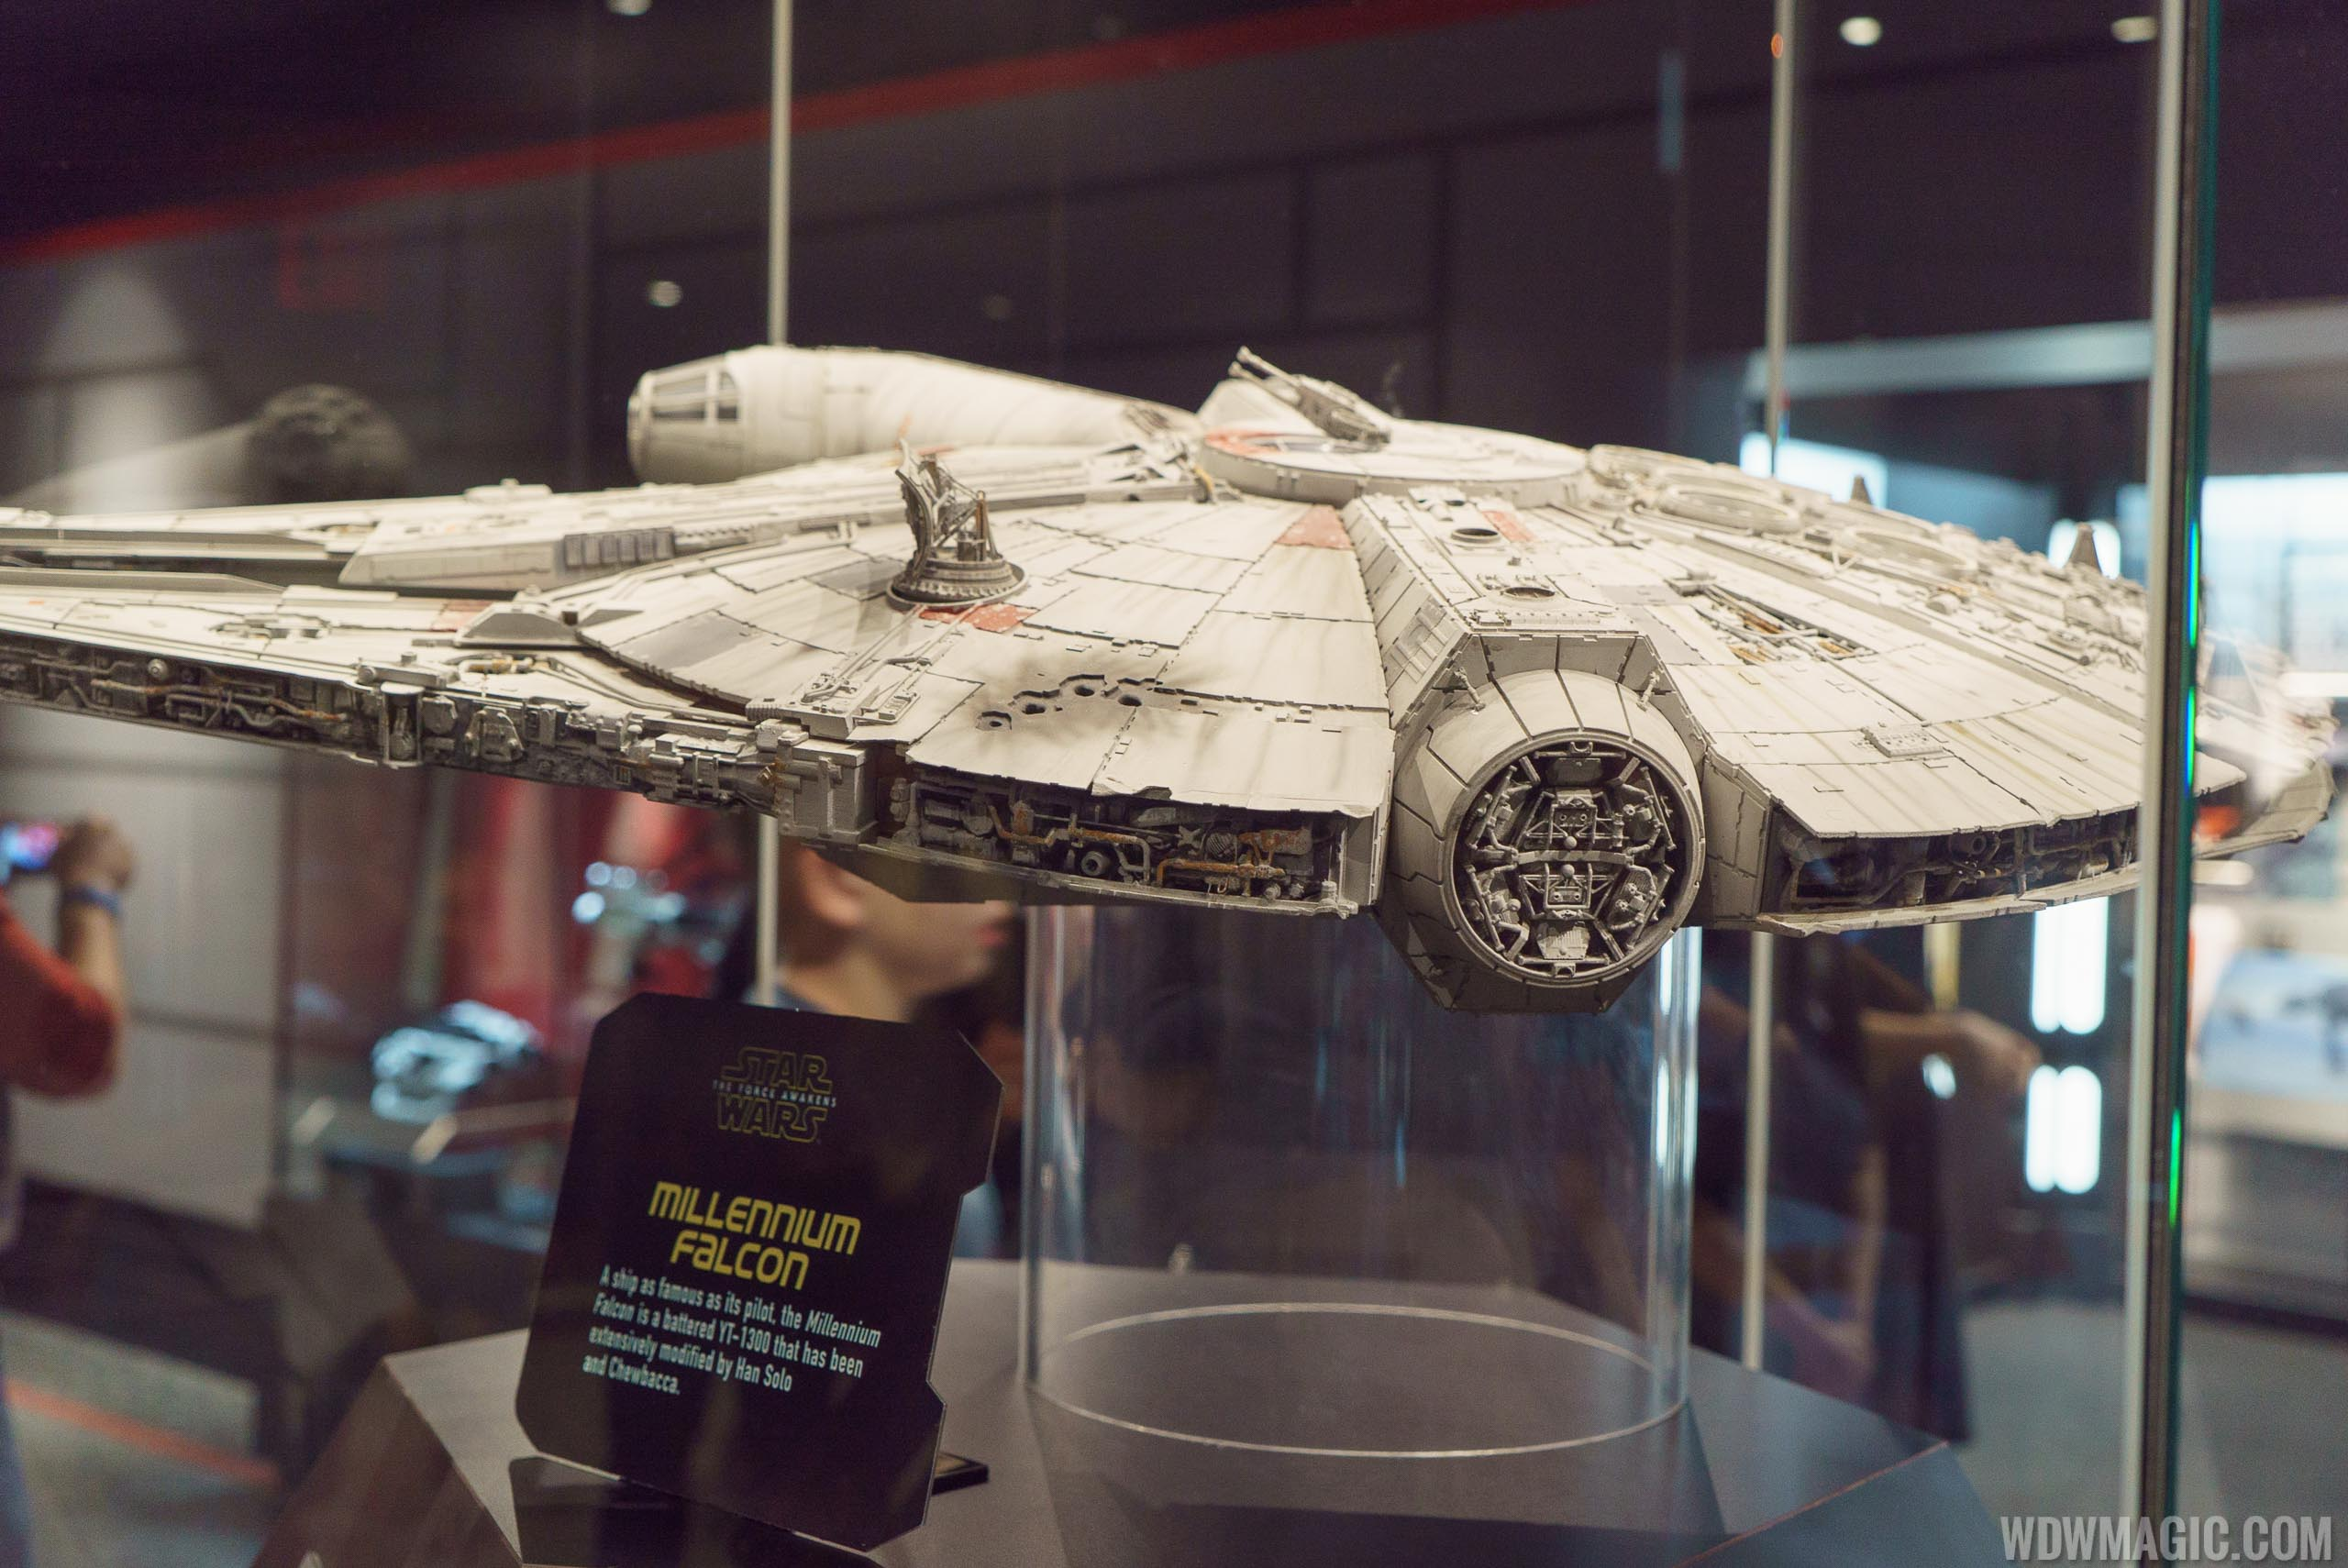 Star Wars Launch Bay - Millennium Falcon model